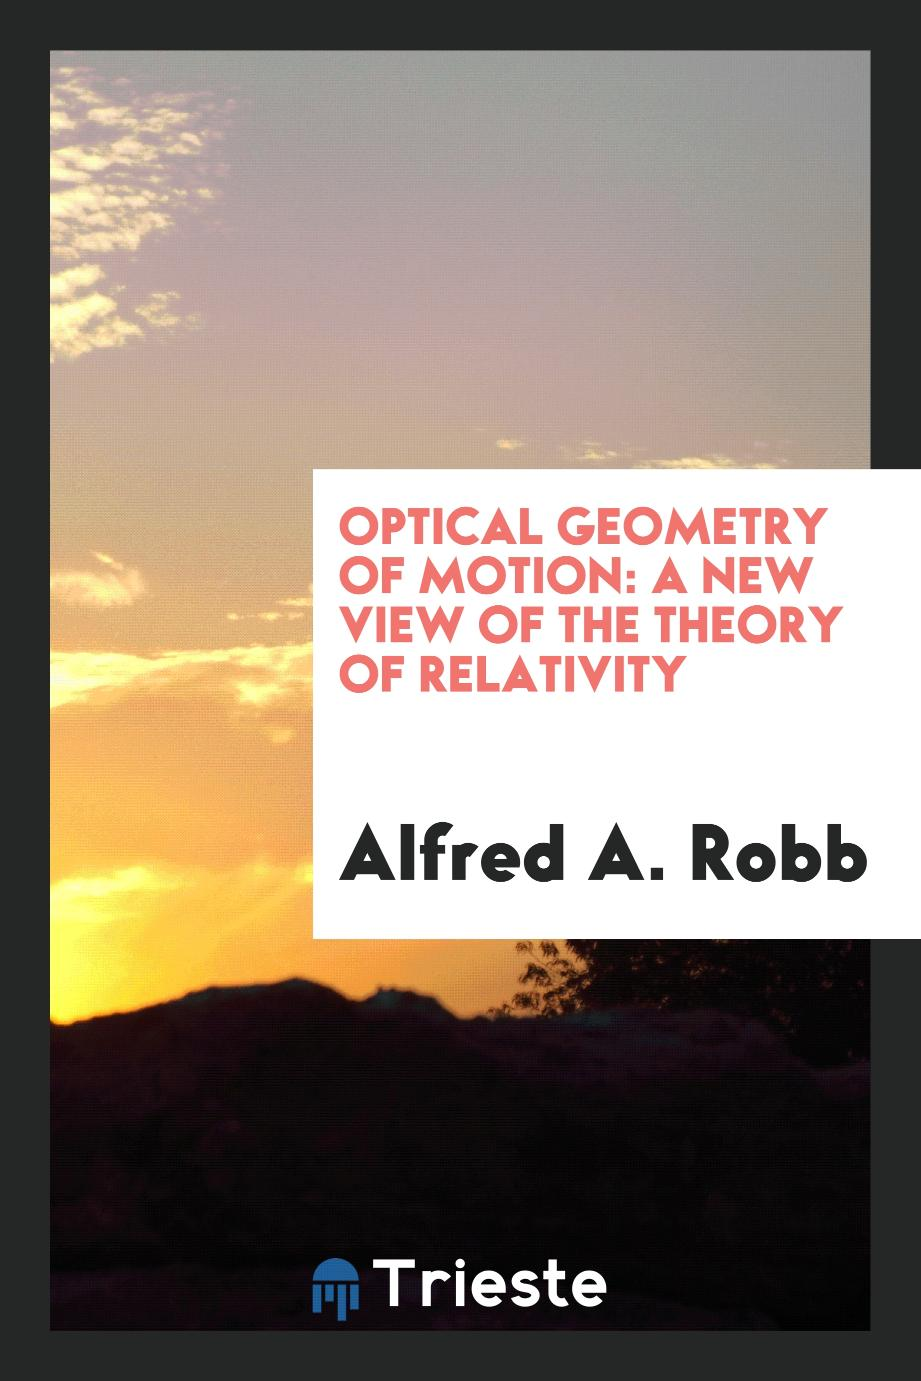 Optical Geometry of Motion: A New View of the Theory of Relativity